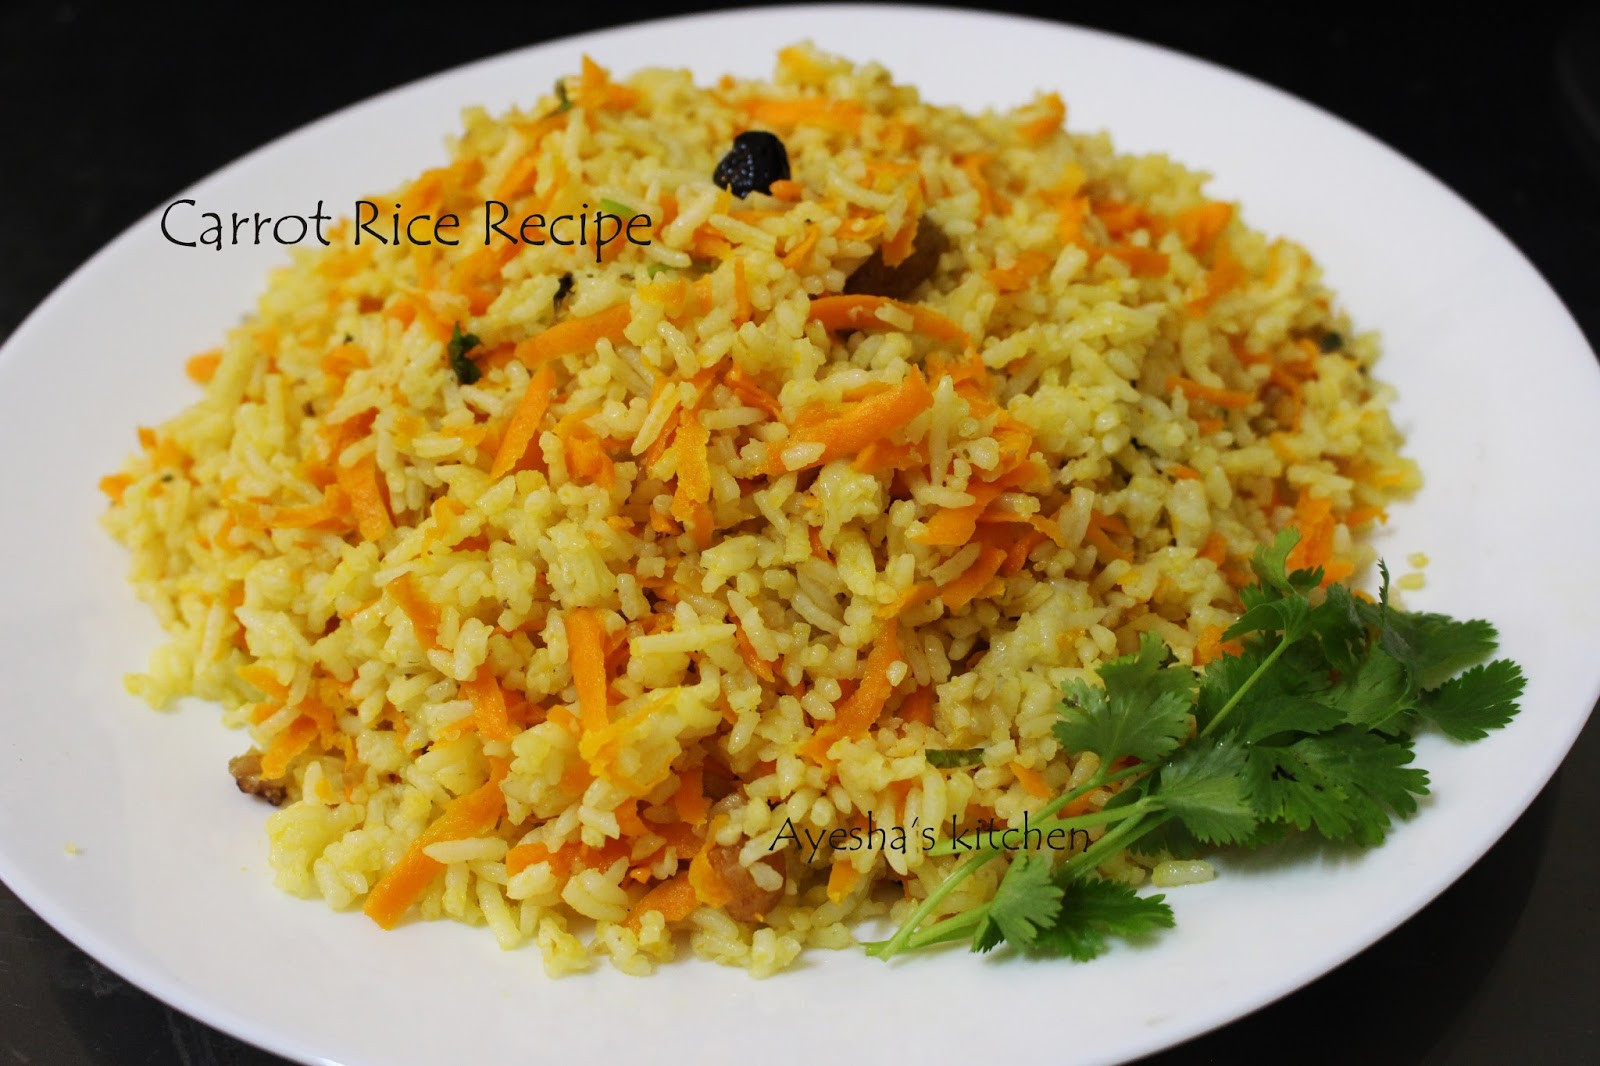 Rice Dinner Recipes  CARROT RICE HOW TO MAKE CARROT RICE QUICK LUNCH